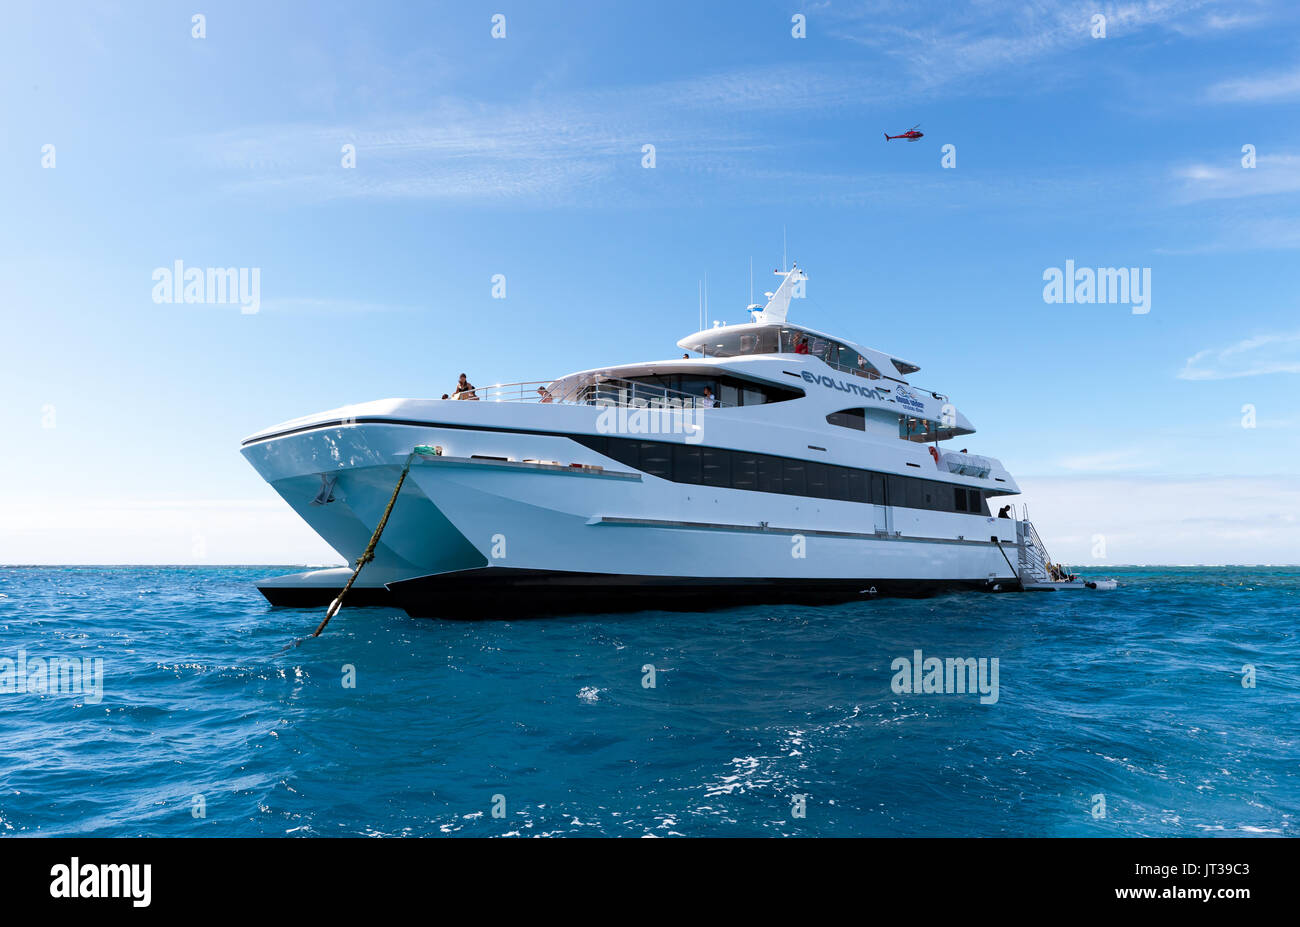 The Evolution, a 33 meter commercial catamaran operated by the Down Under Cruise and Dive Company, moored off Hastings Reef  Cairns - Stock Image